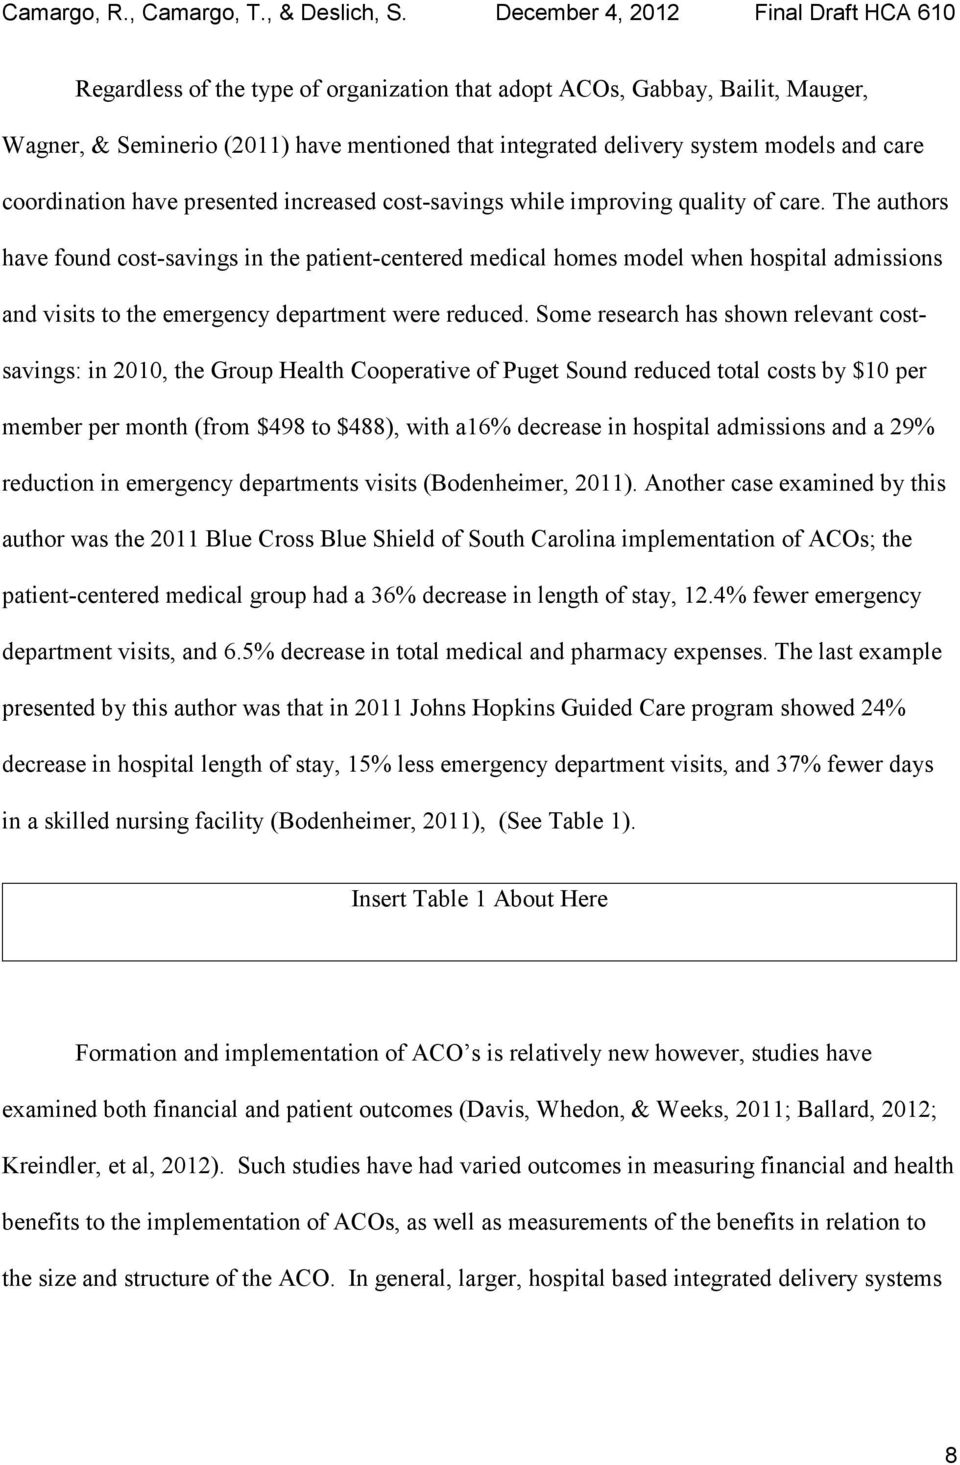 The authors have found cost-savings in the patient-centered medical homes model when hospital admissions and visits to the emergency department were reduced.